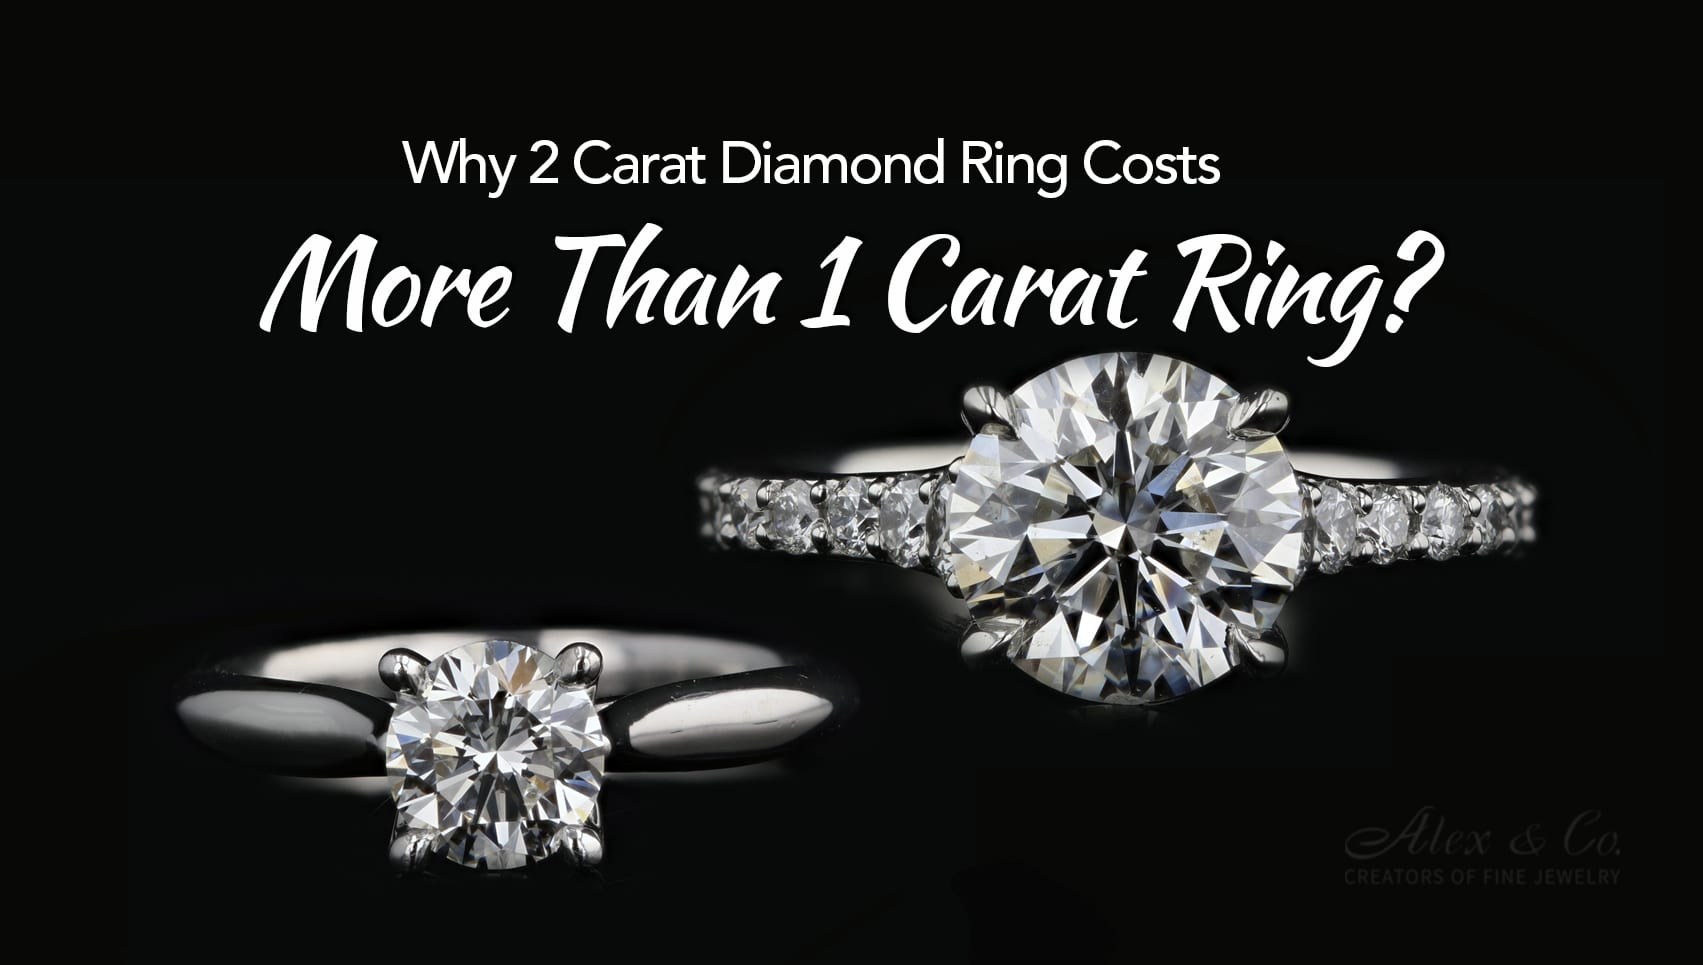 Why 2 Carat Diamond Ring Costs More Than 1 Carat Ring featured image